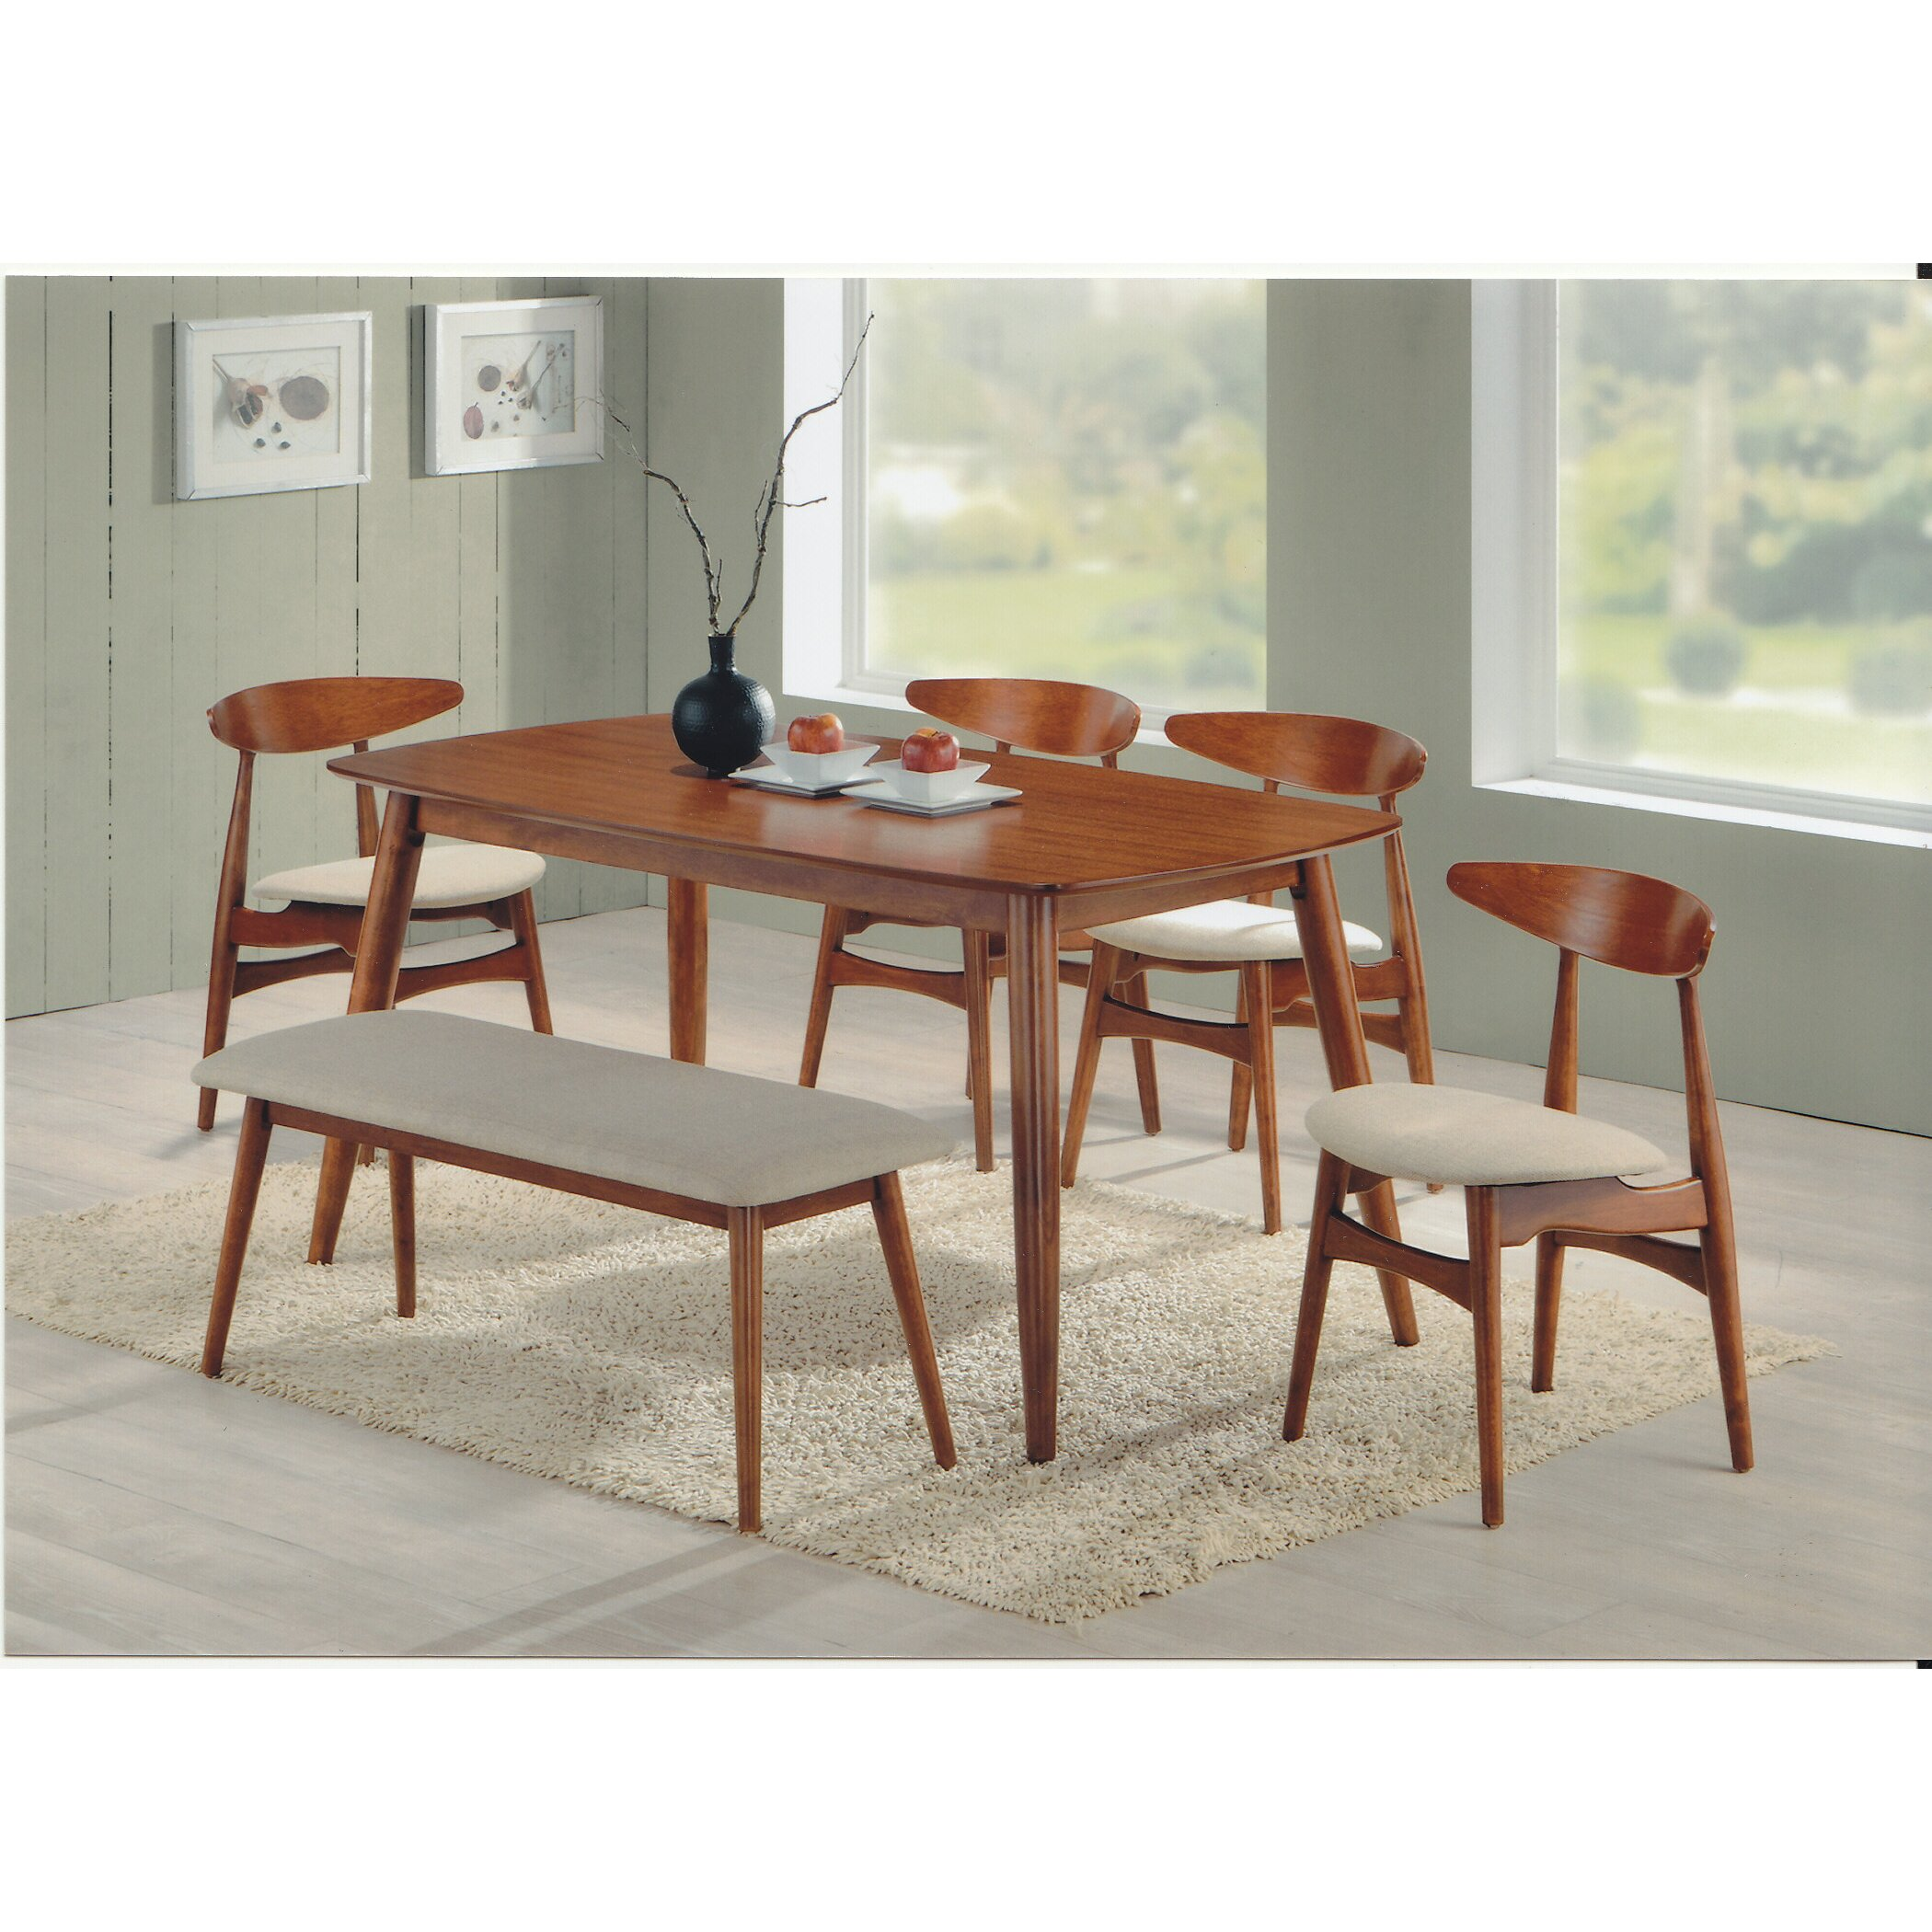 Mid Century Modern Dining: Wholesale Interiors Napoleon 6 Piece Dining Set & Reviews